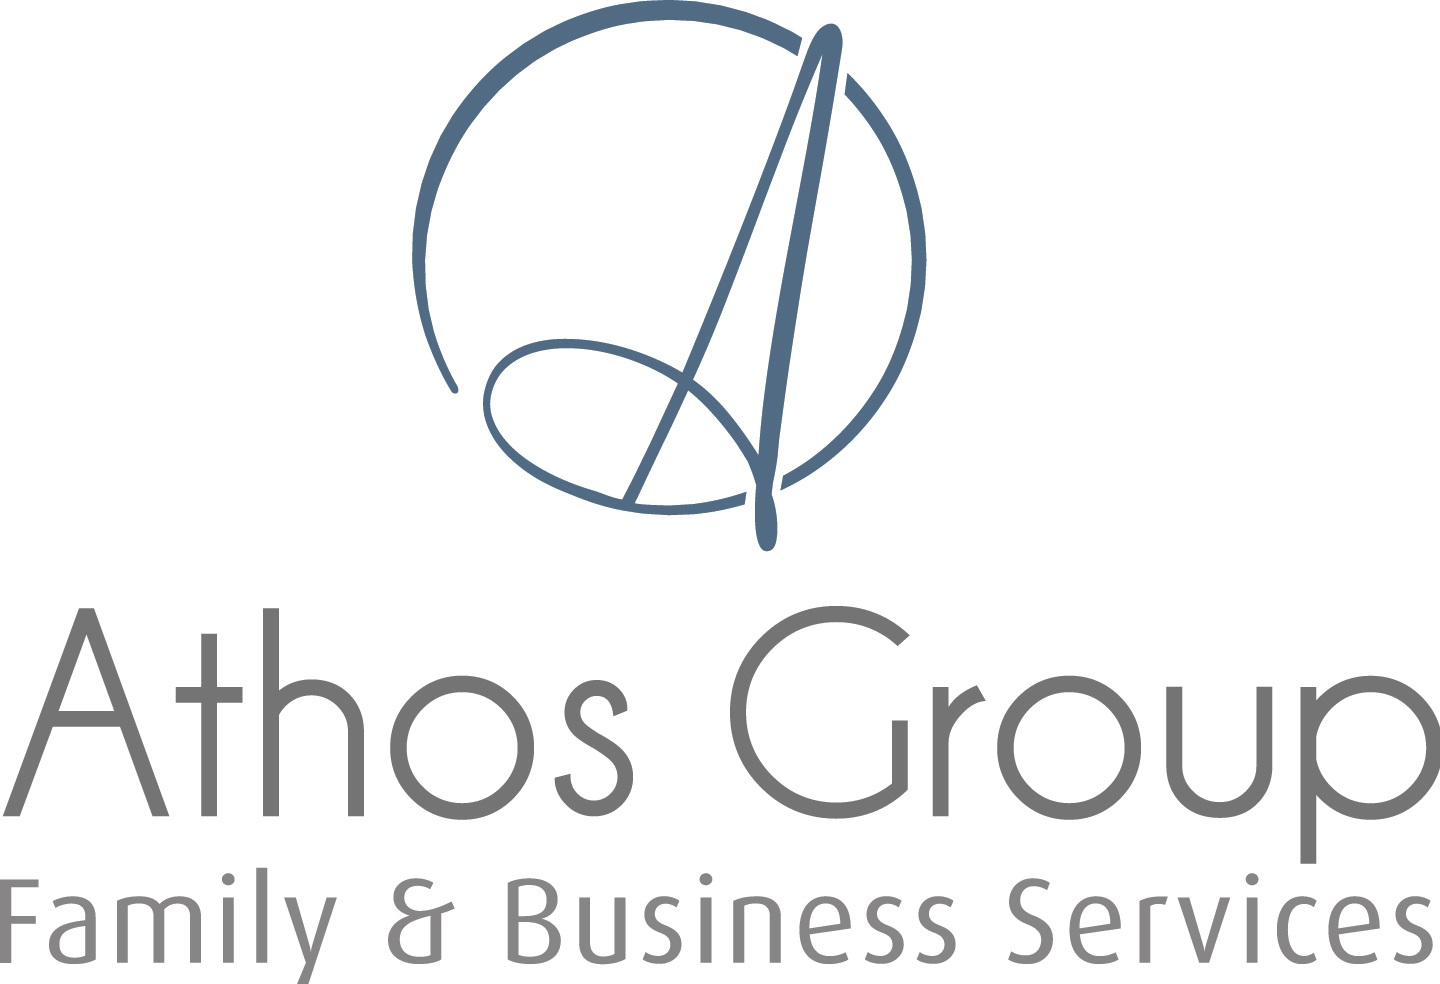 Athos Group logo